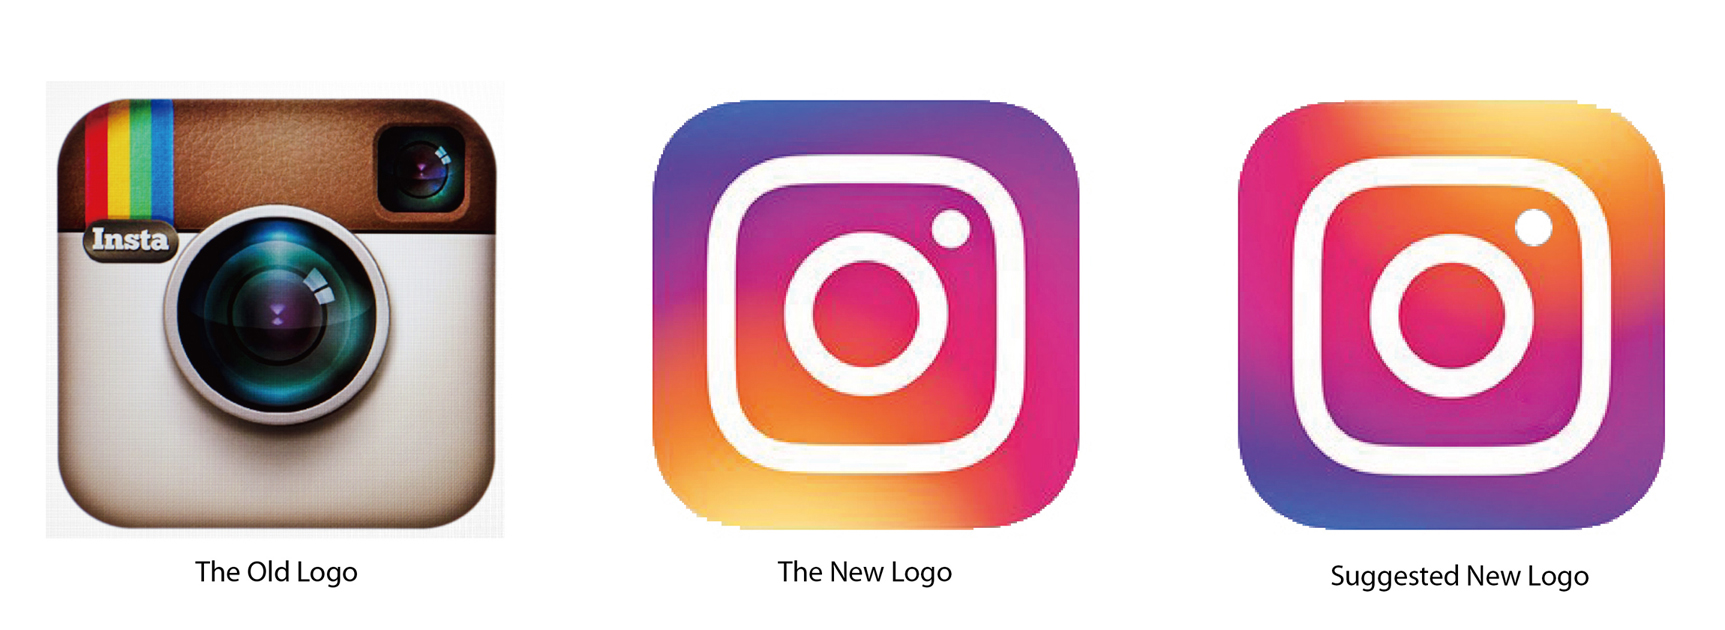 instagrams new logo design